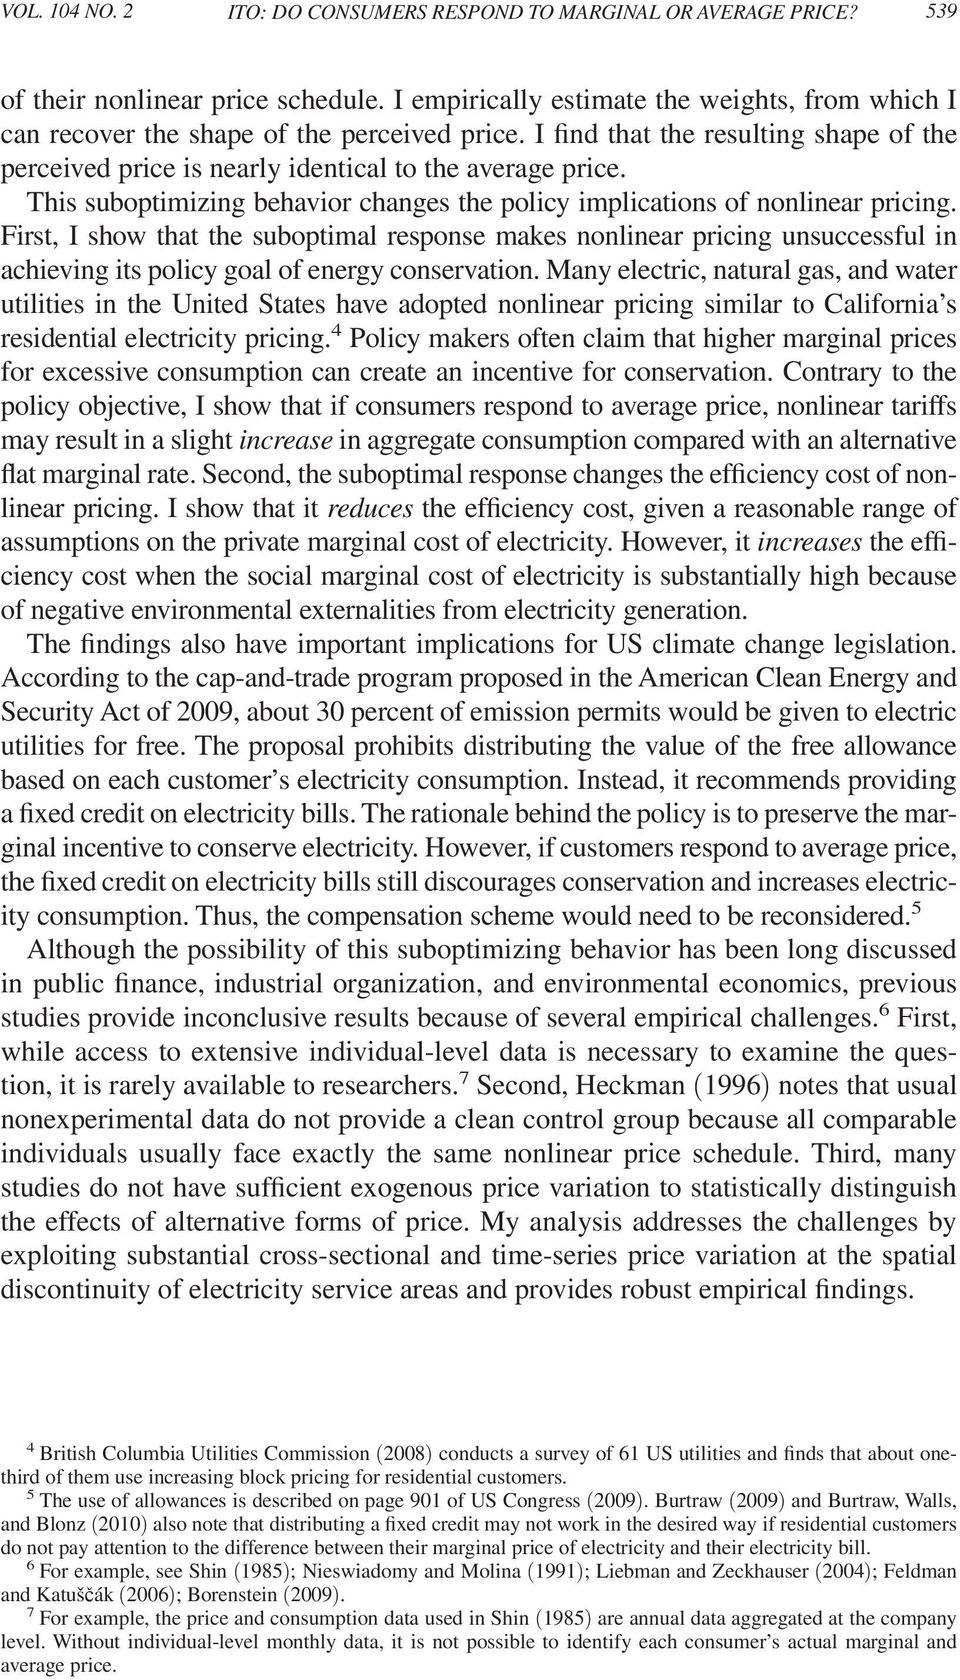 This suboptimizing behavior changes the policy implications of nonlinear pricing.